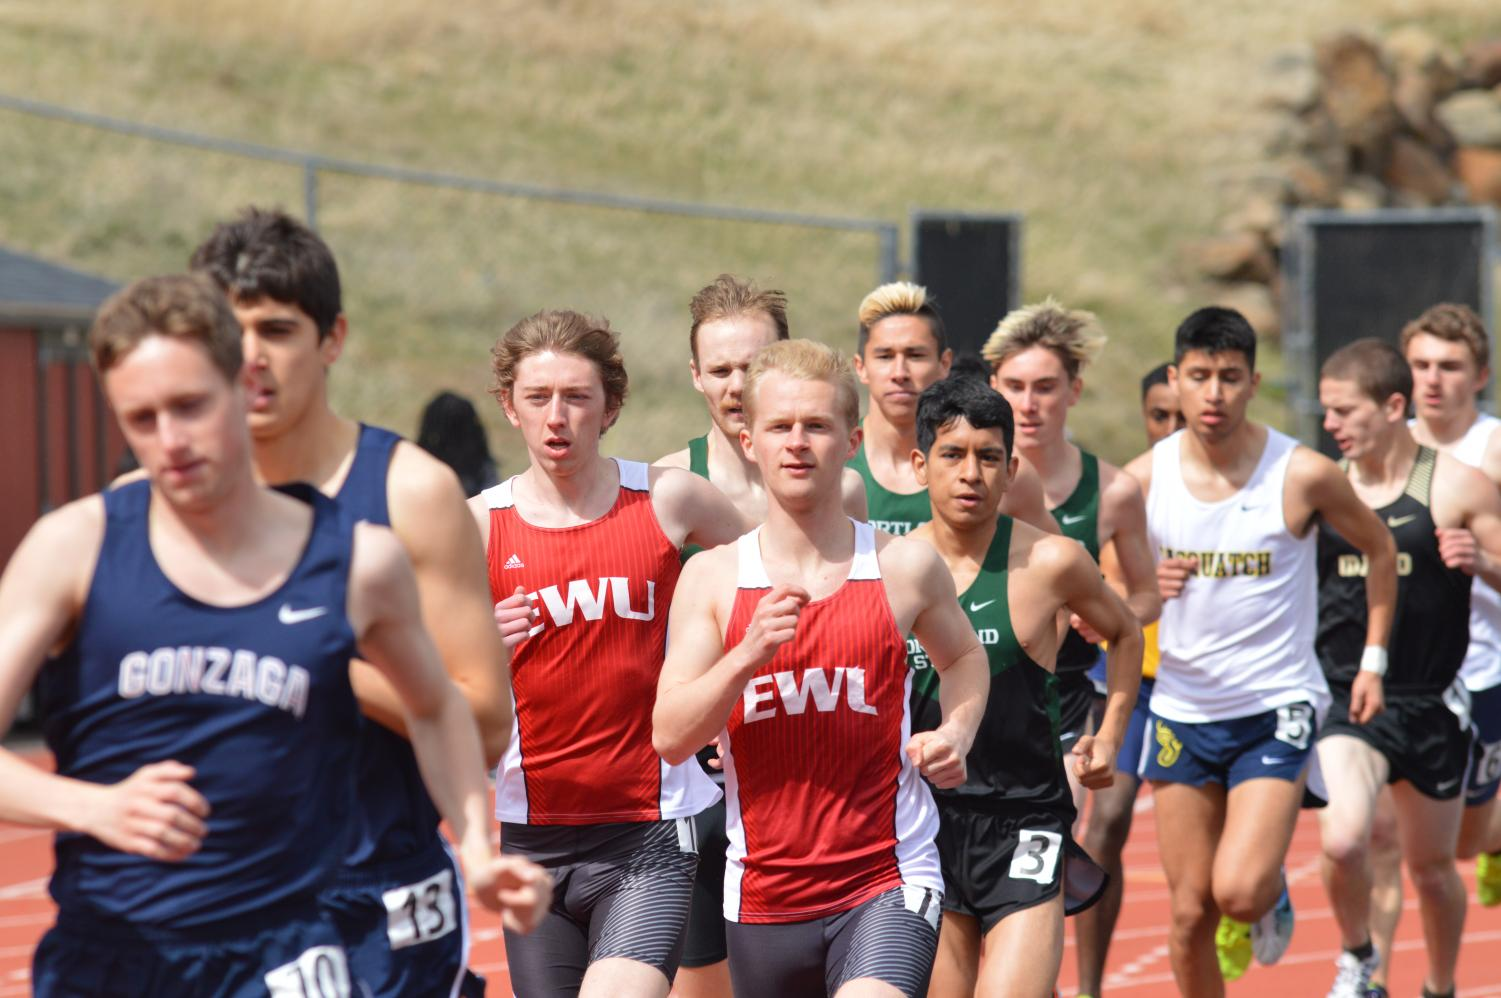 Freshman Jacob Christner (left) and senior Mason Nicol compete in the 1,500-meter at the Pelluer Invitational on April 14. Last weekend, the Eagles had seven first-place finishes at the OSU High Performance meet in Corvallis | Bailey Monteith for The Easterner